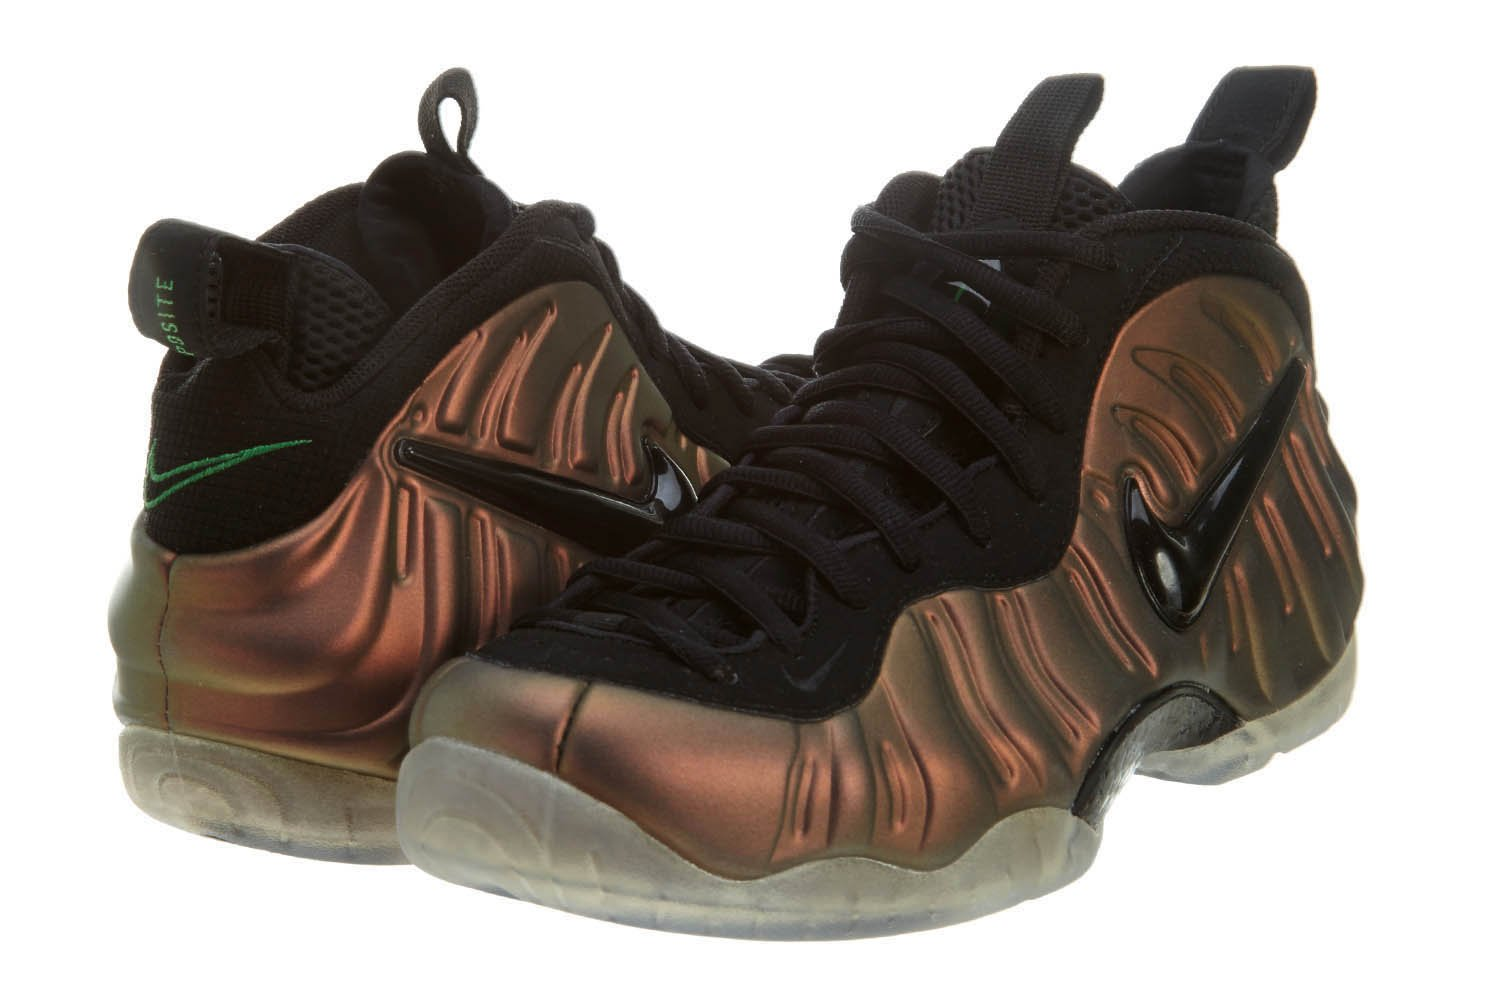 Nike Herren Air Foamposite Pro Basketballschuhe  Gr??e US 6Y / EU 38,5|Black, Gym Green